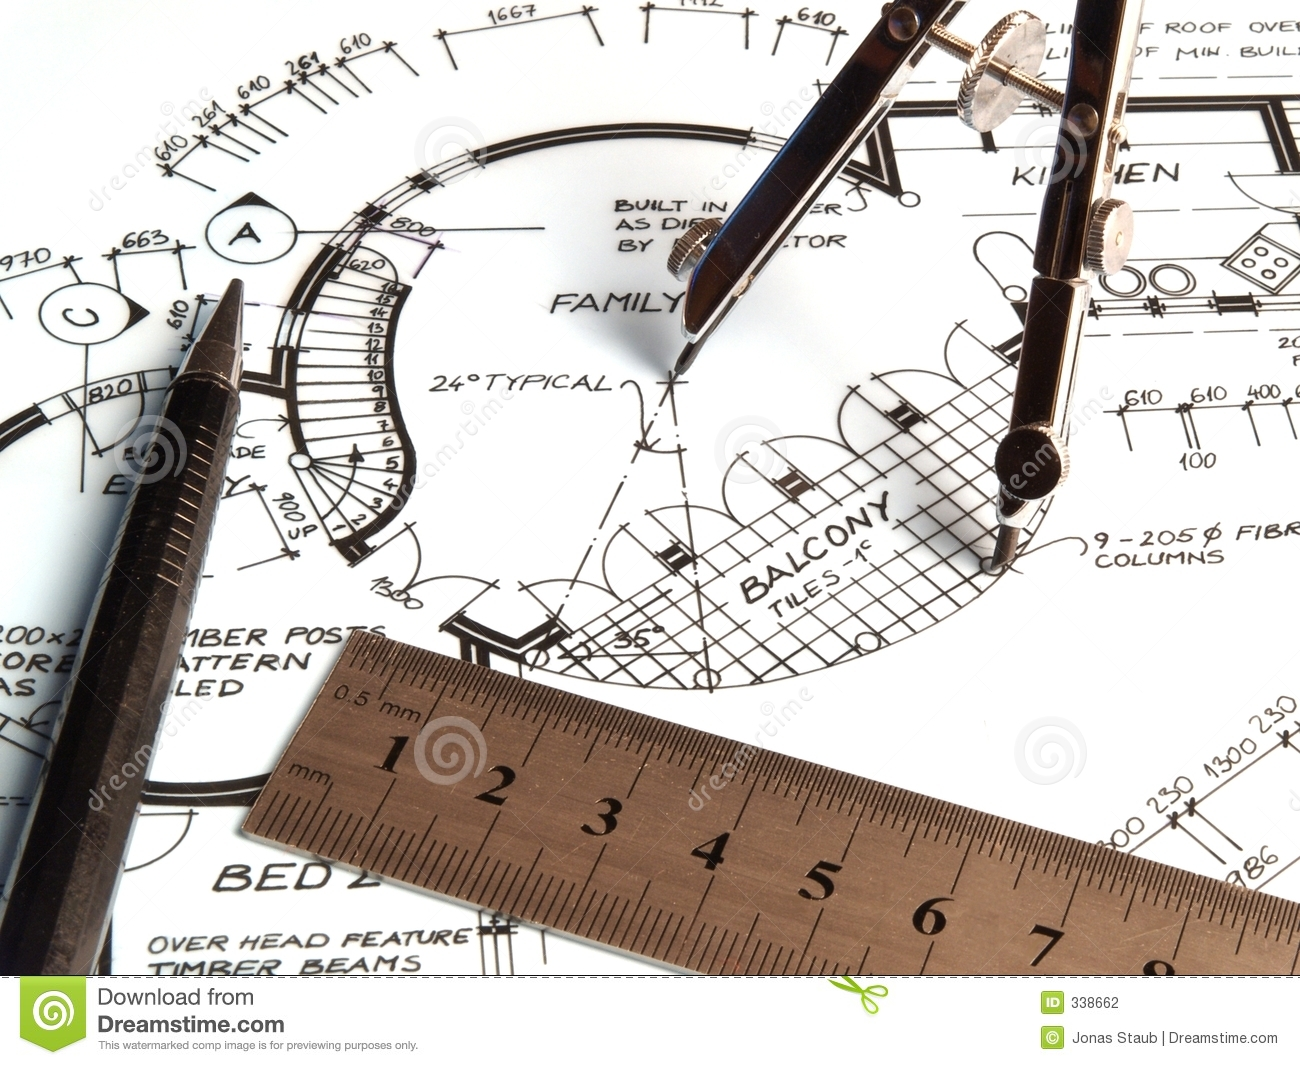 Drafting Tools Stock Photography - Image: 338662